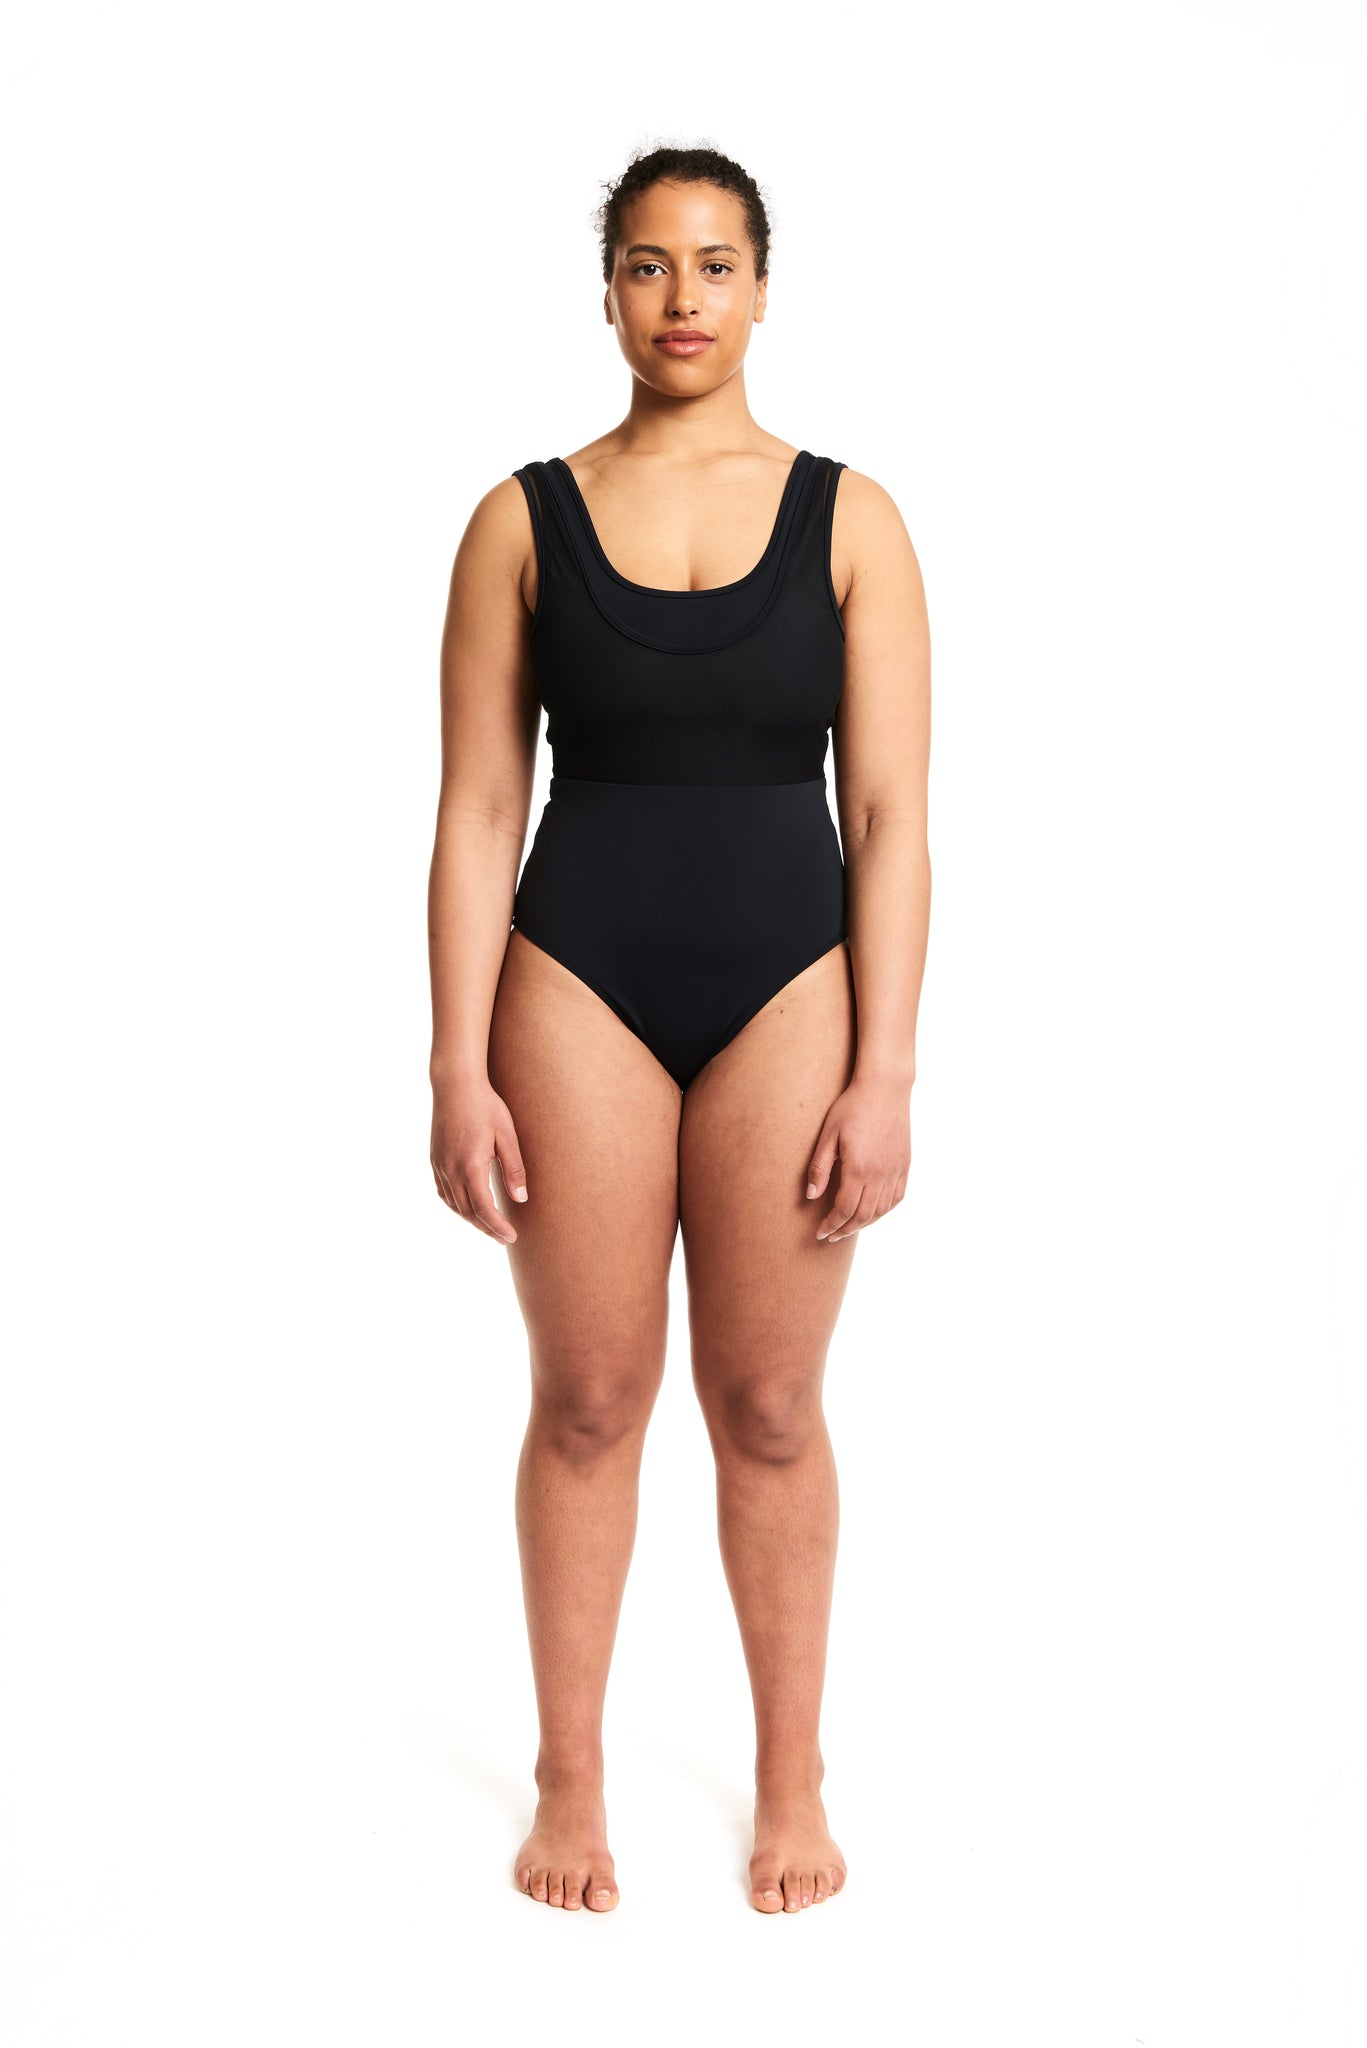 CAPRI ONE PIECE - BLACK